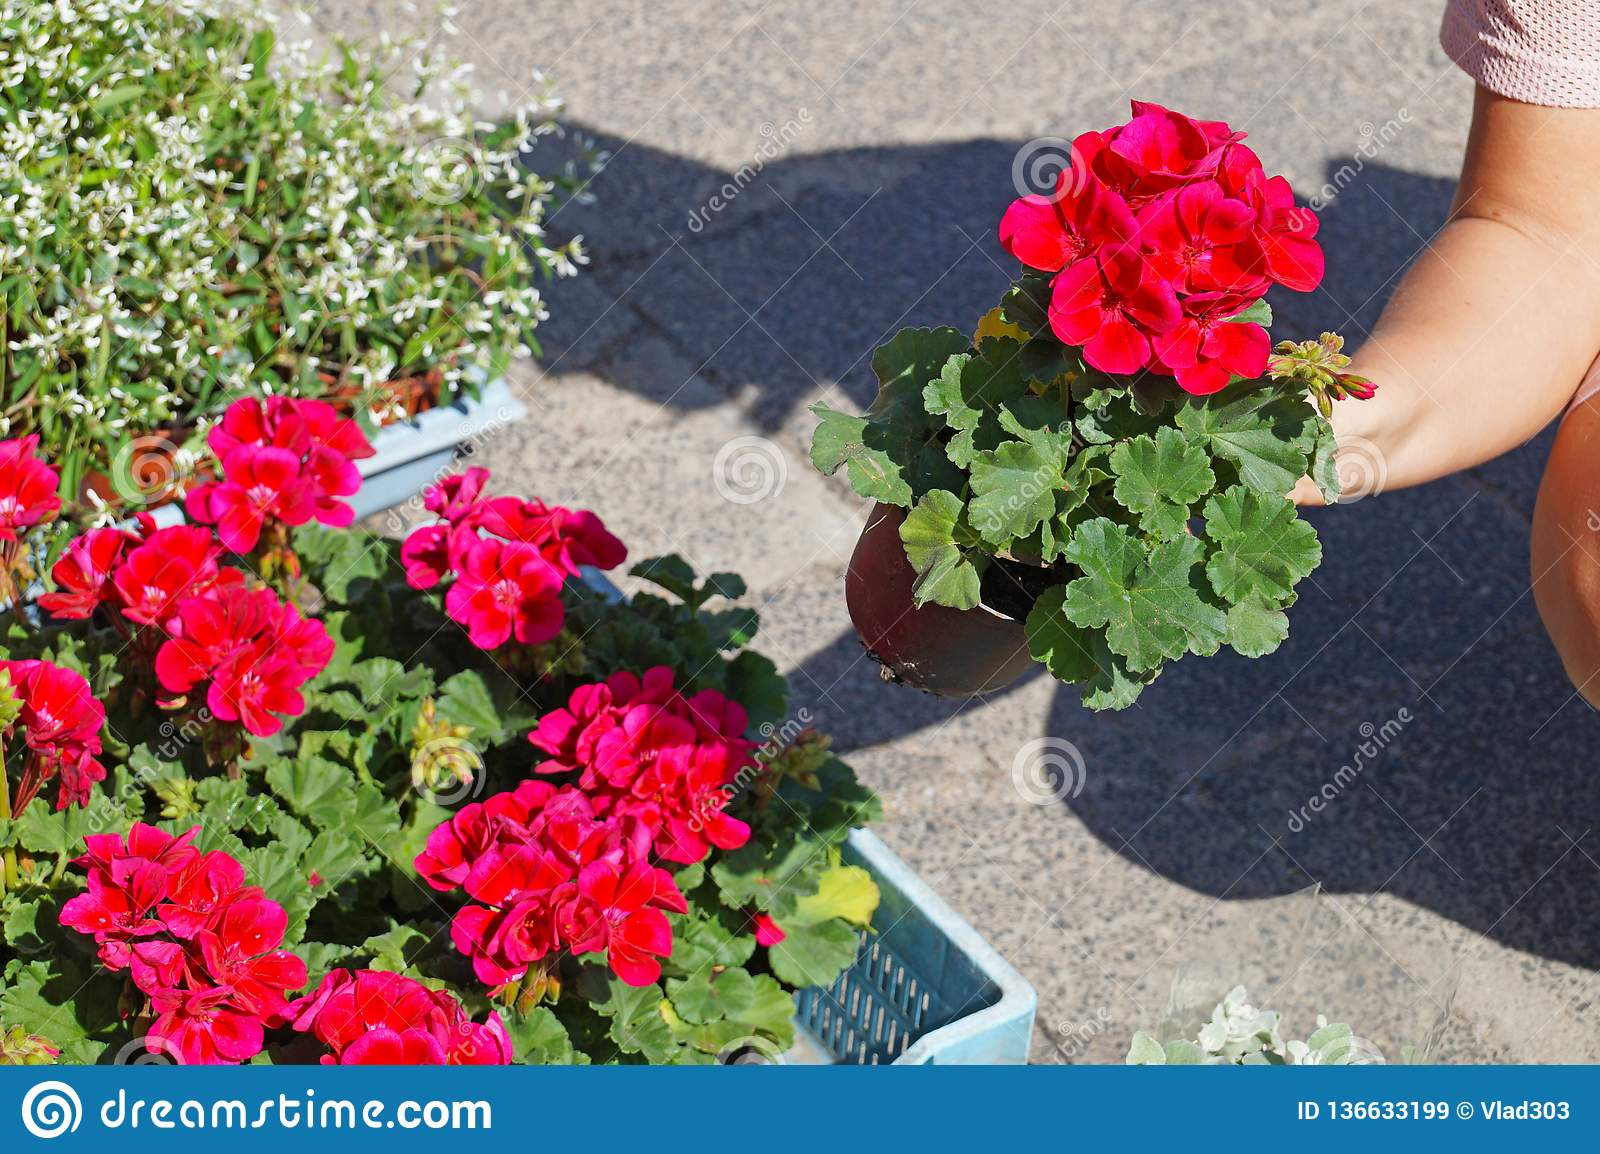 A Woman Choosing Pelargonium Flowers Before Buying Commonly Known